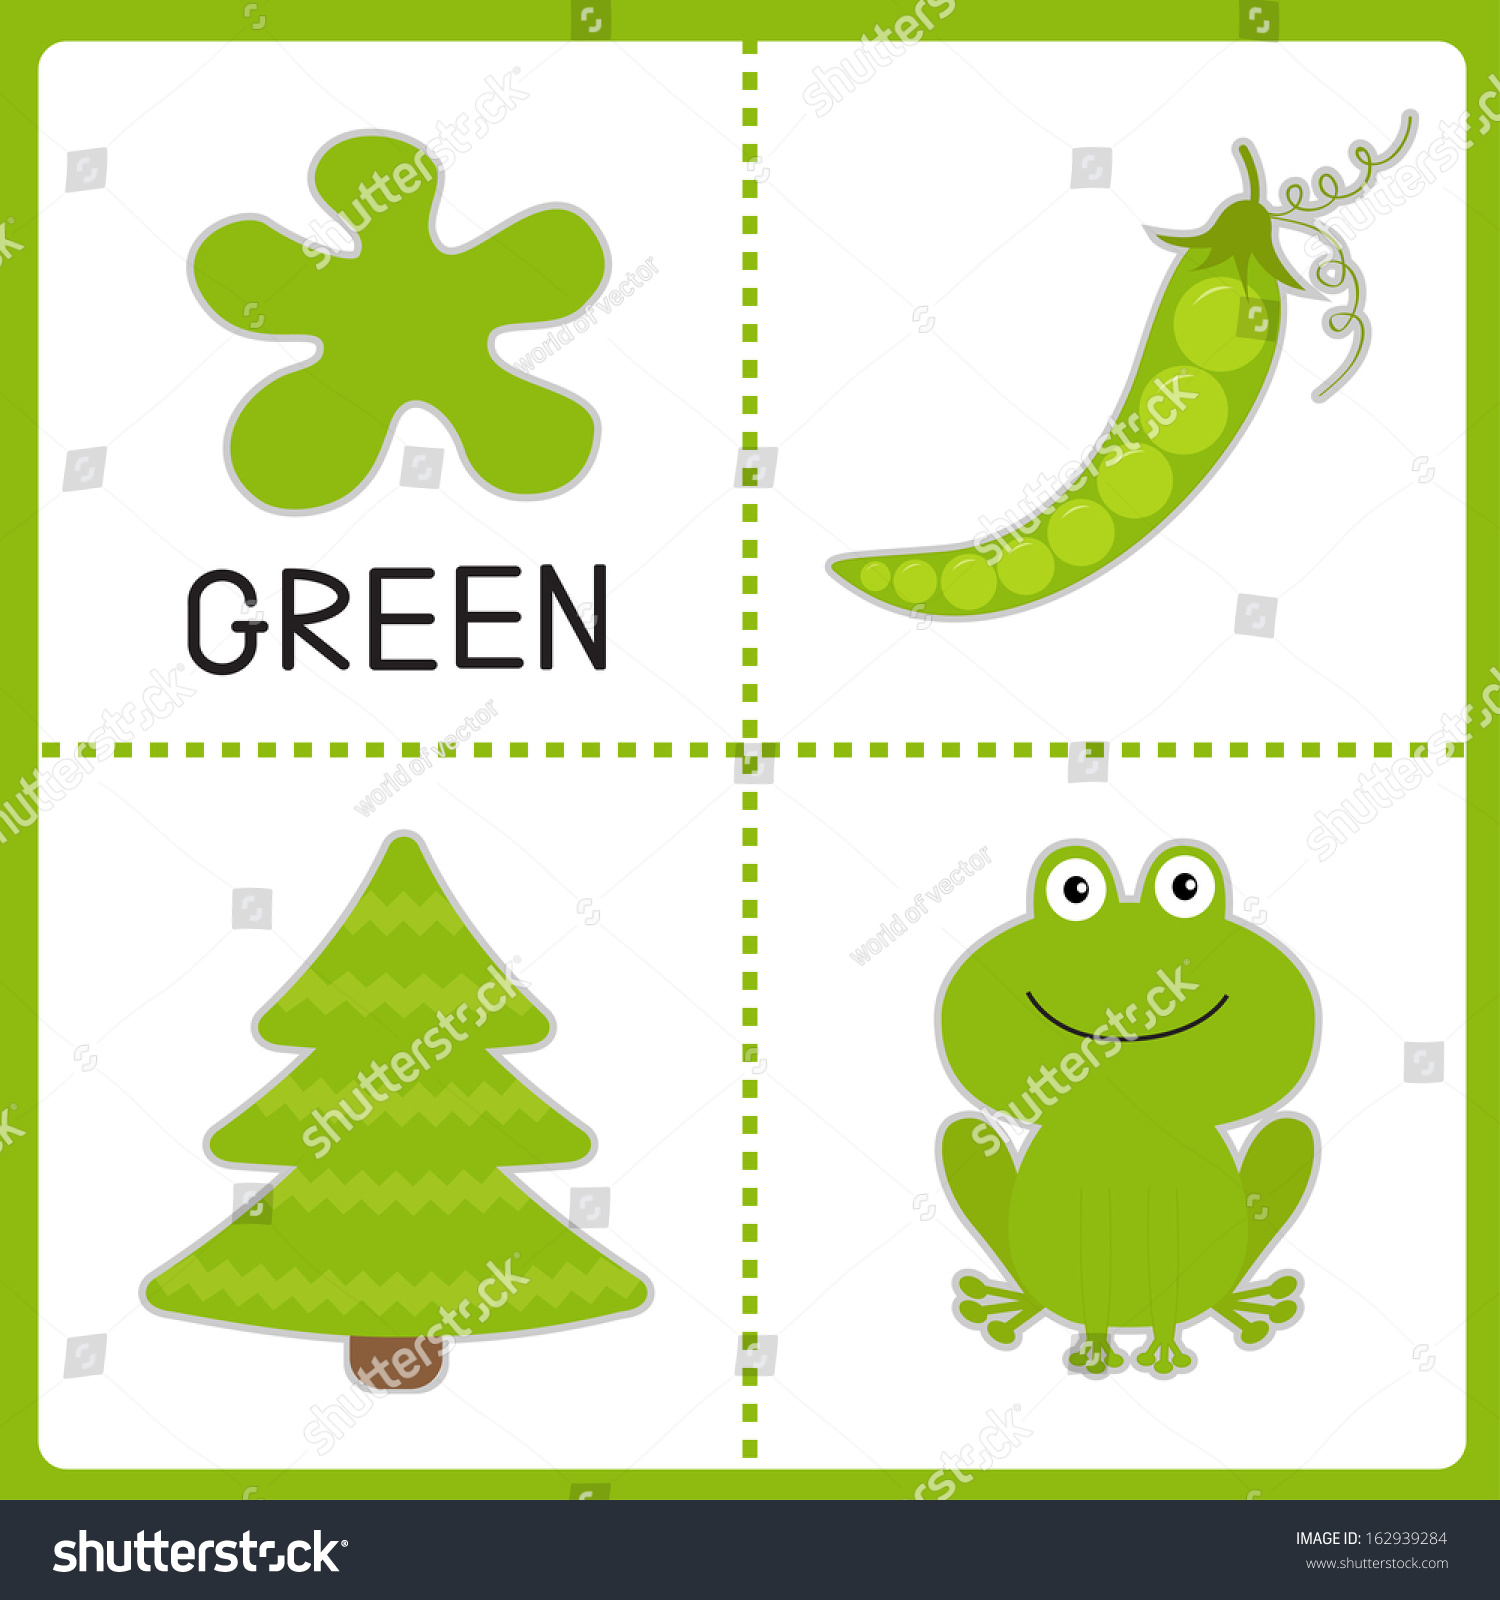 Color cards for kids - Learning Green Color Frog Green Pea And Fir Tree Educational Cards For Kids